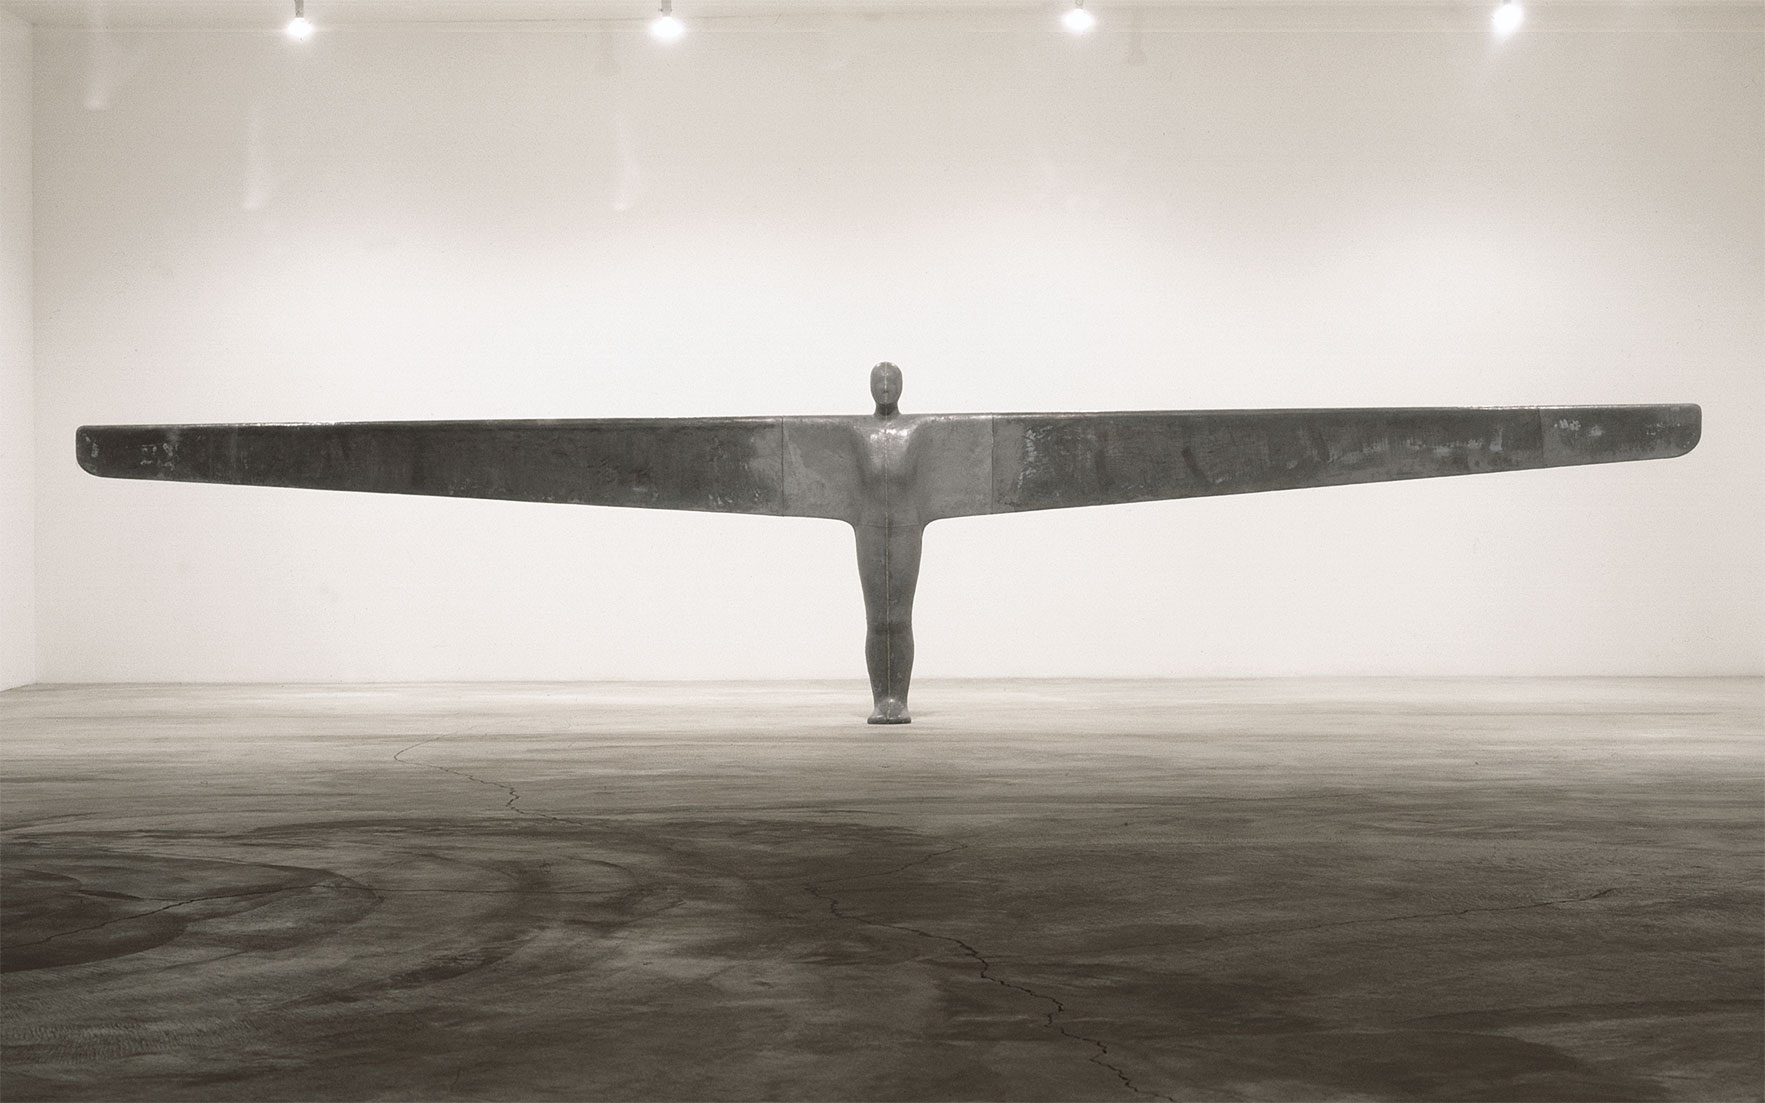 Antony Gormley (B. 1950), A Case for an Angel I, 1989. 77½ x 337¾ x 18⅛ in (197 x 858 x 46 cm). Estimate £5,000,000-7,000,000. This lot is offered in Post-War and Contemporary Art